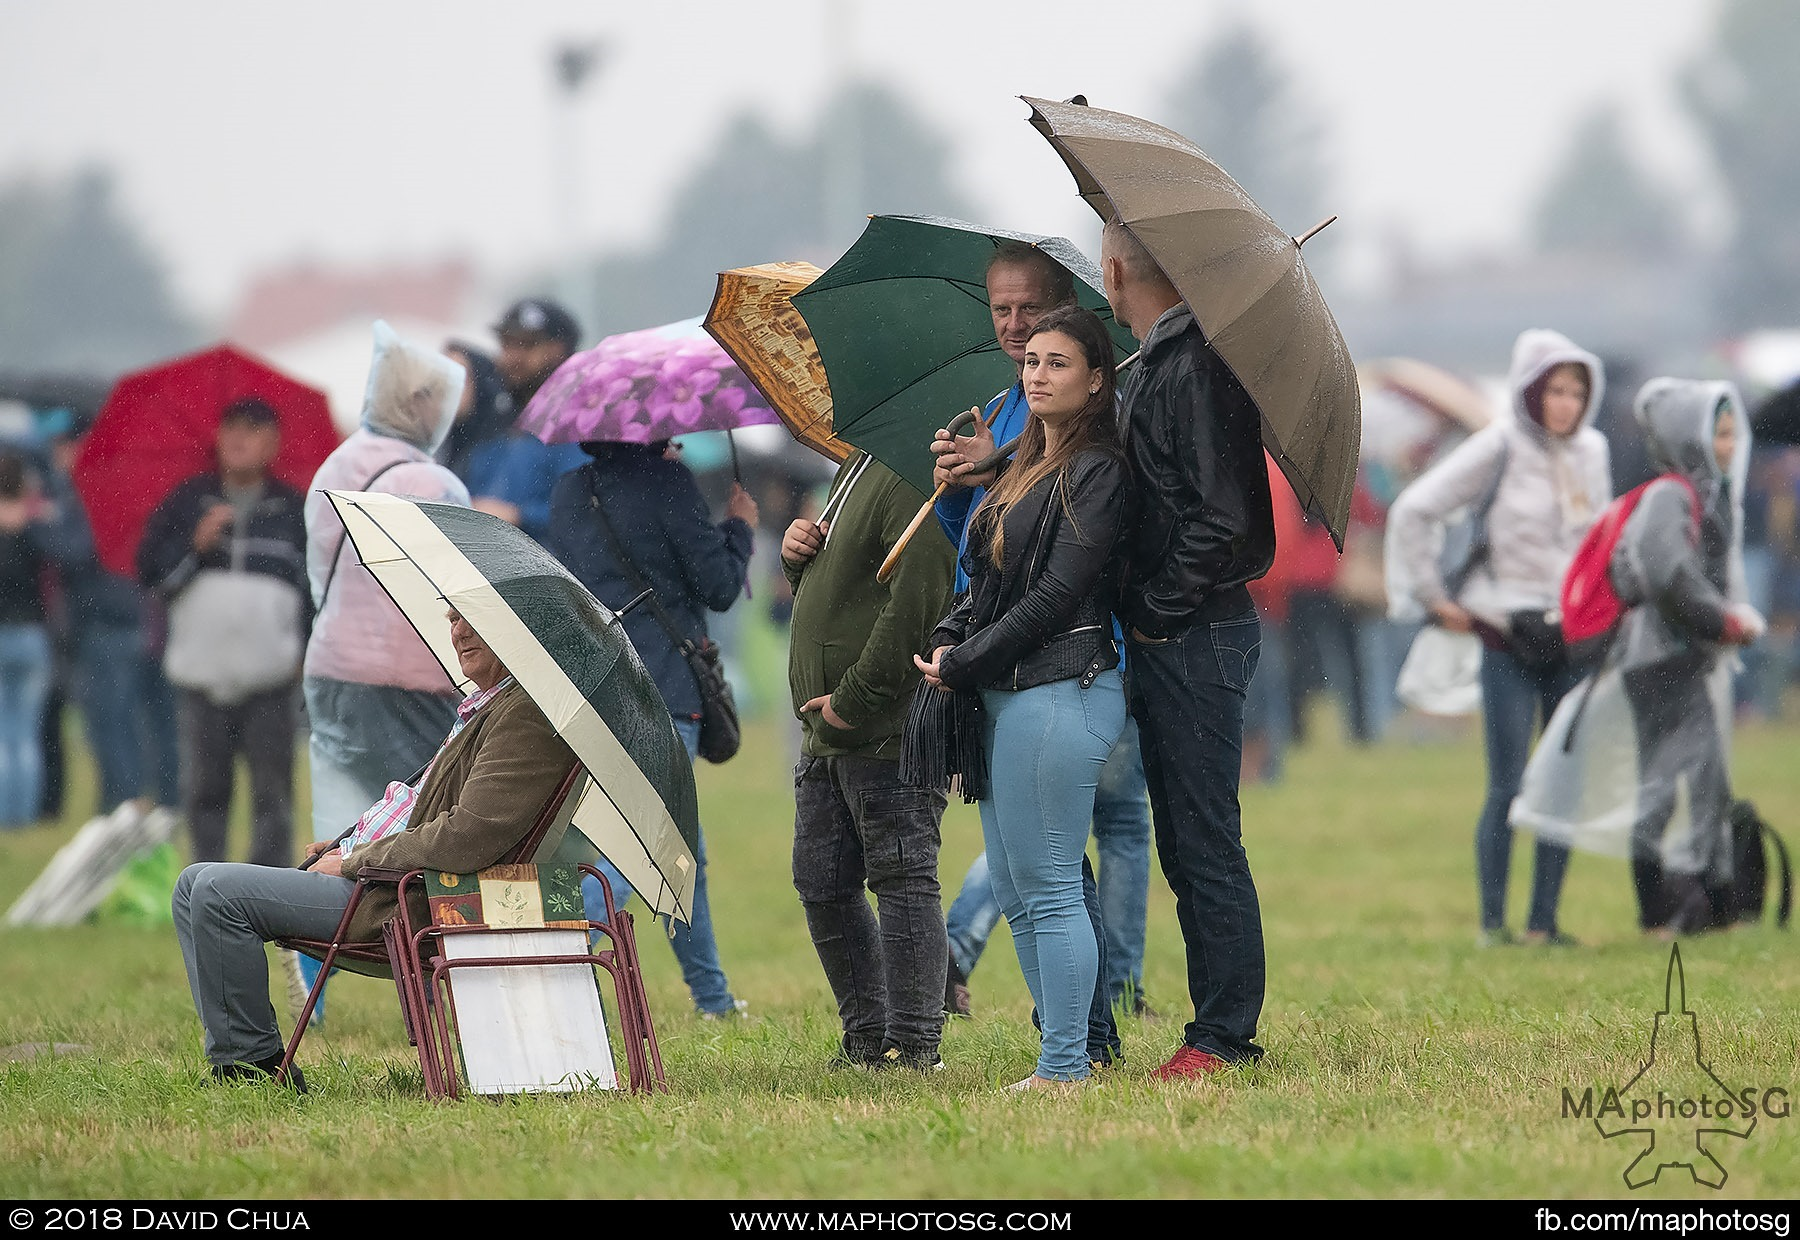 28. Many people attended the airshow over the weekend despite the bad weather